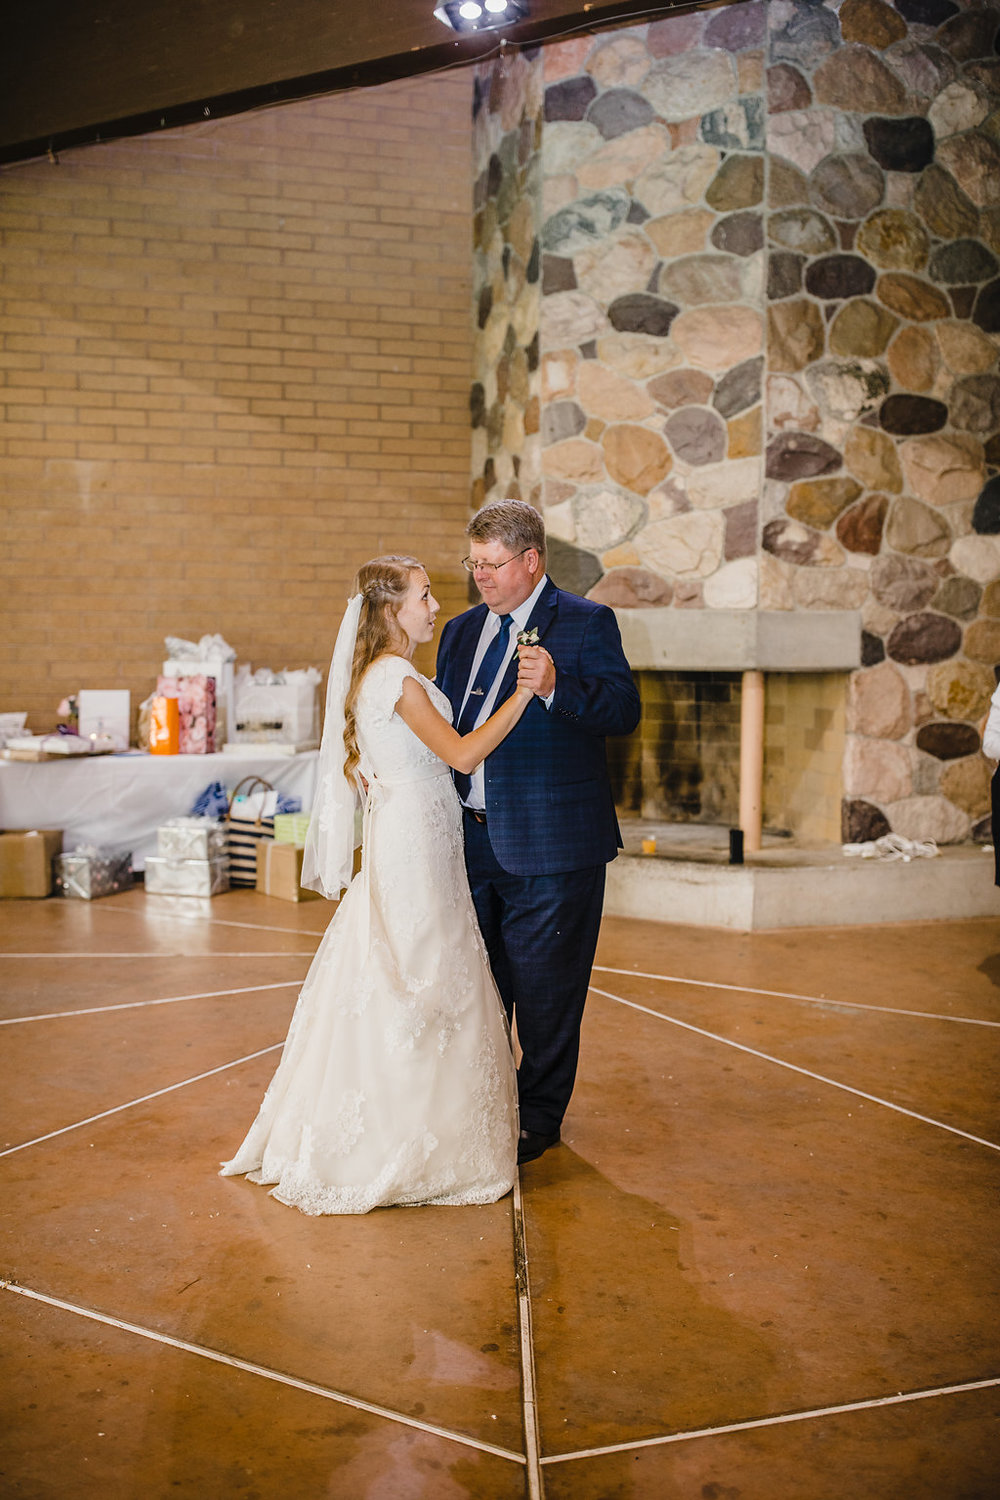 bride and father dance at reception professional wedding day photographer calli richards salt lake city utah lds wedding reception northern utah